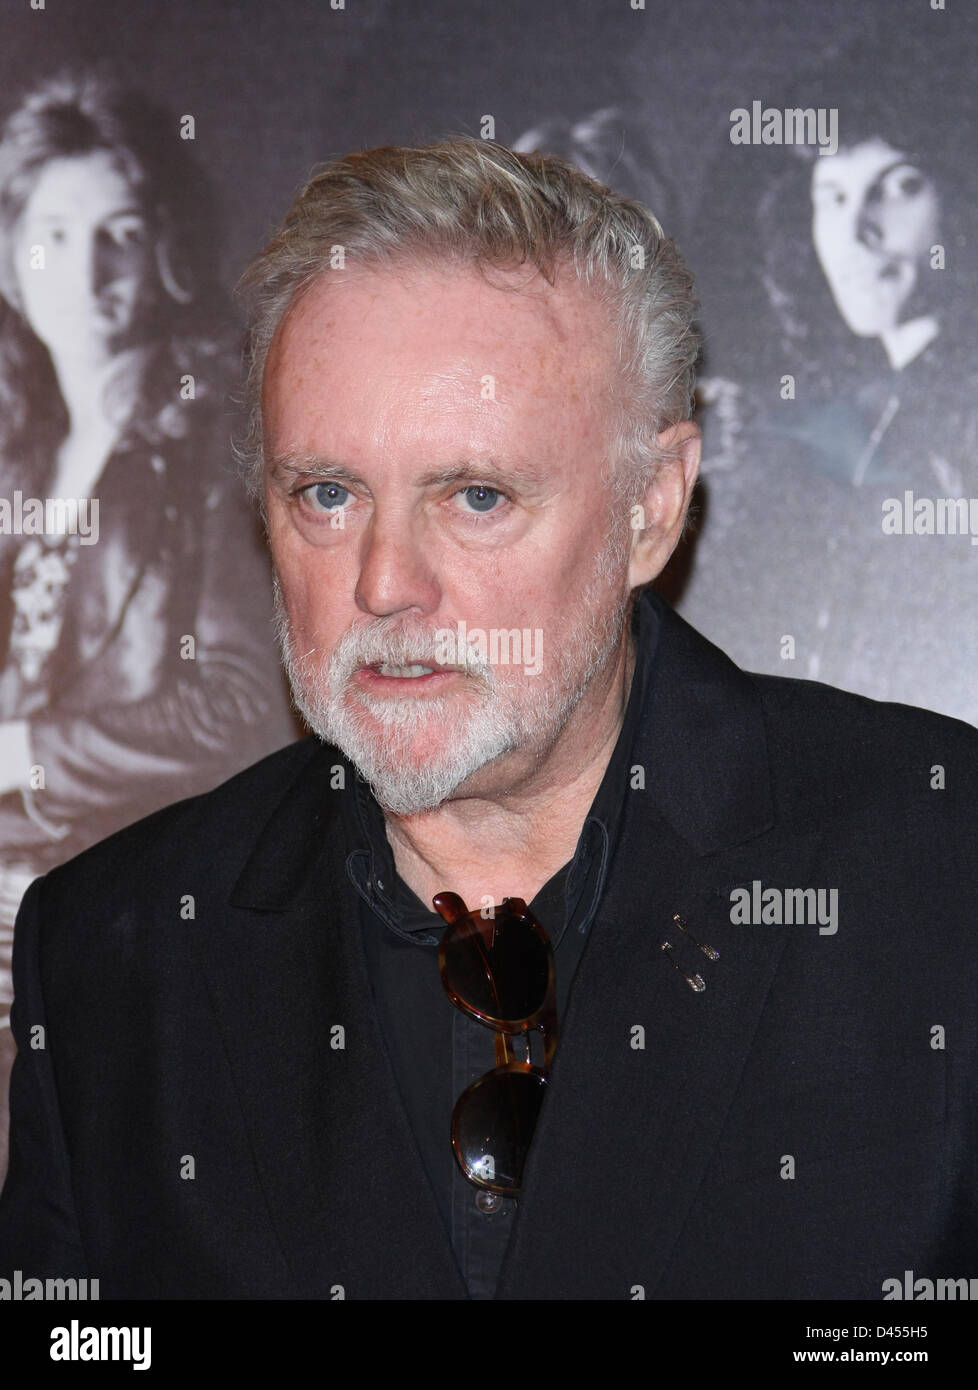 ROGER TAYLOR PRS FOR MUSIC HONOURS QUEEN WITH A HERITAGE AWARD IMPERIAL COLLEGE LONDON  UK 05 March 2013 - Stock Image